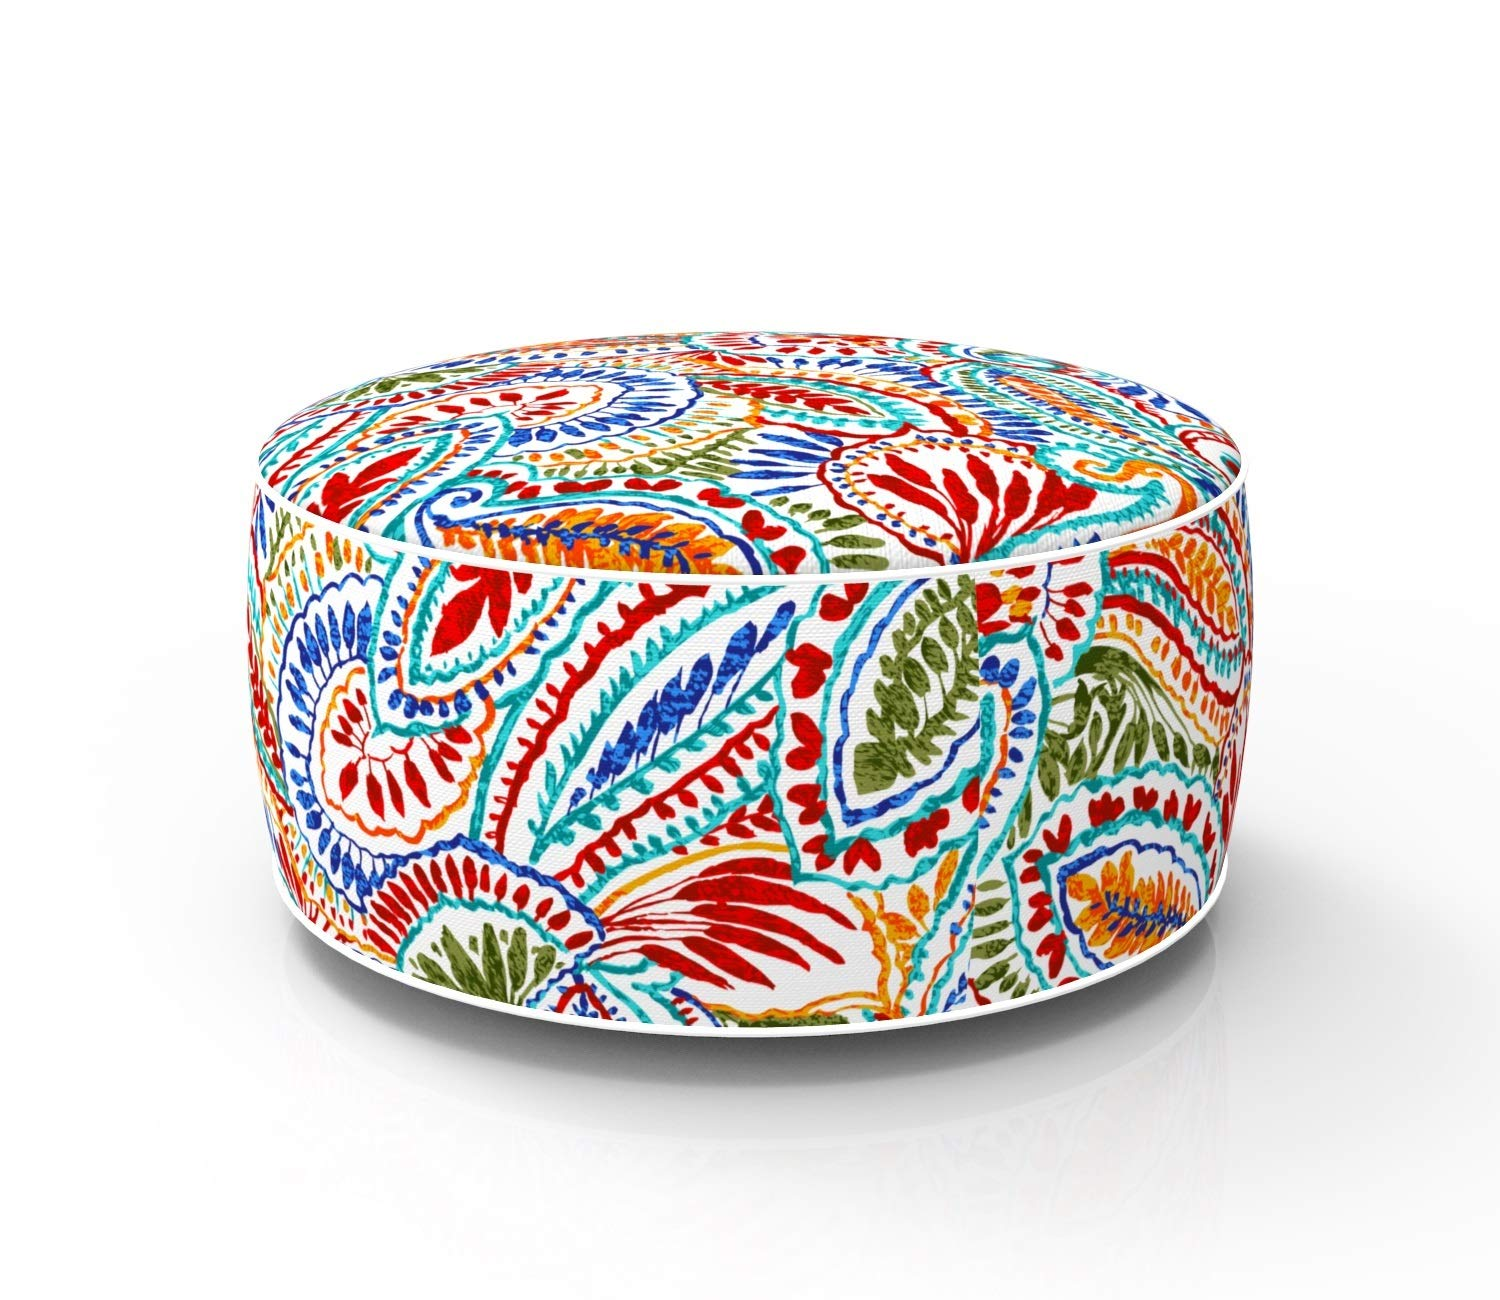 Fabritones Outdoor Inflatable Stool Paisley Round Ottoman Portable Foot Rest for Patio, Camping Home Yoga - Suitable for Kids and Adults